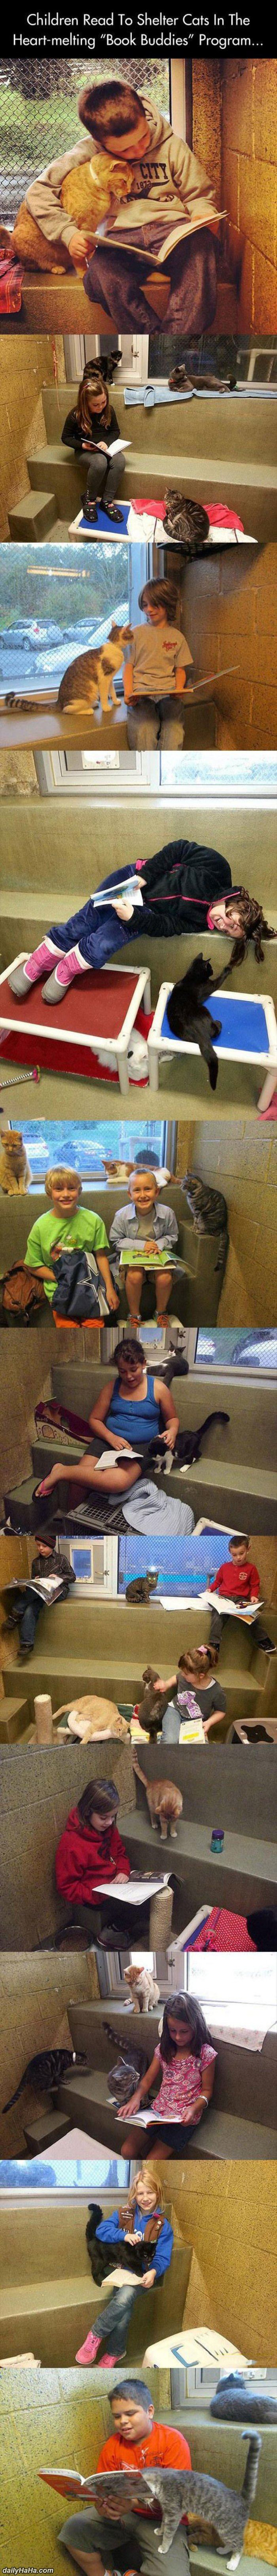 children reading to shelter animals funny picture